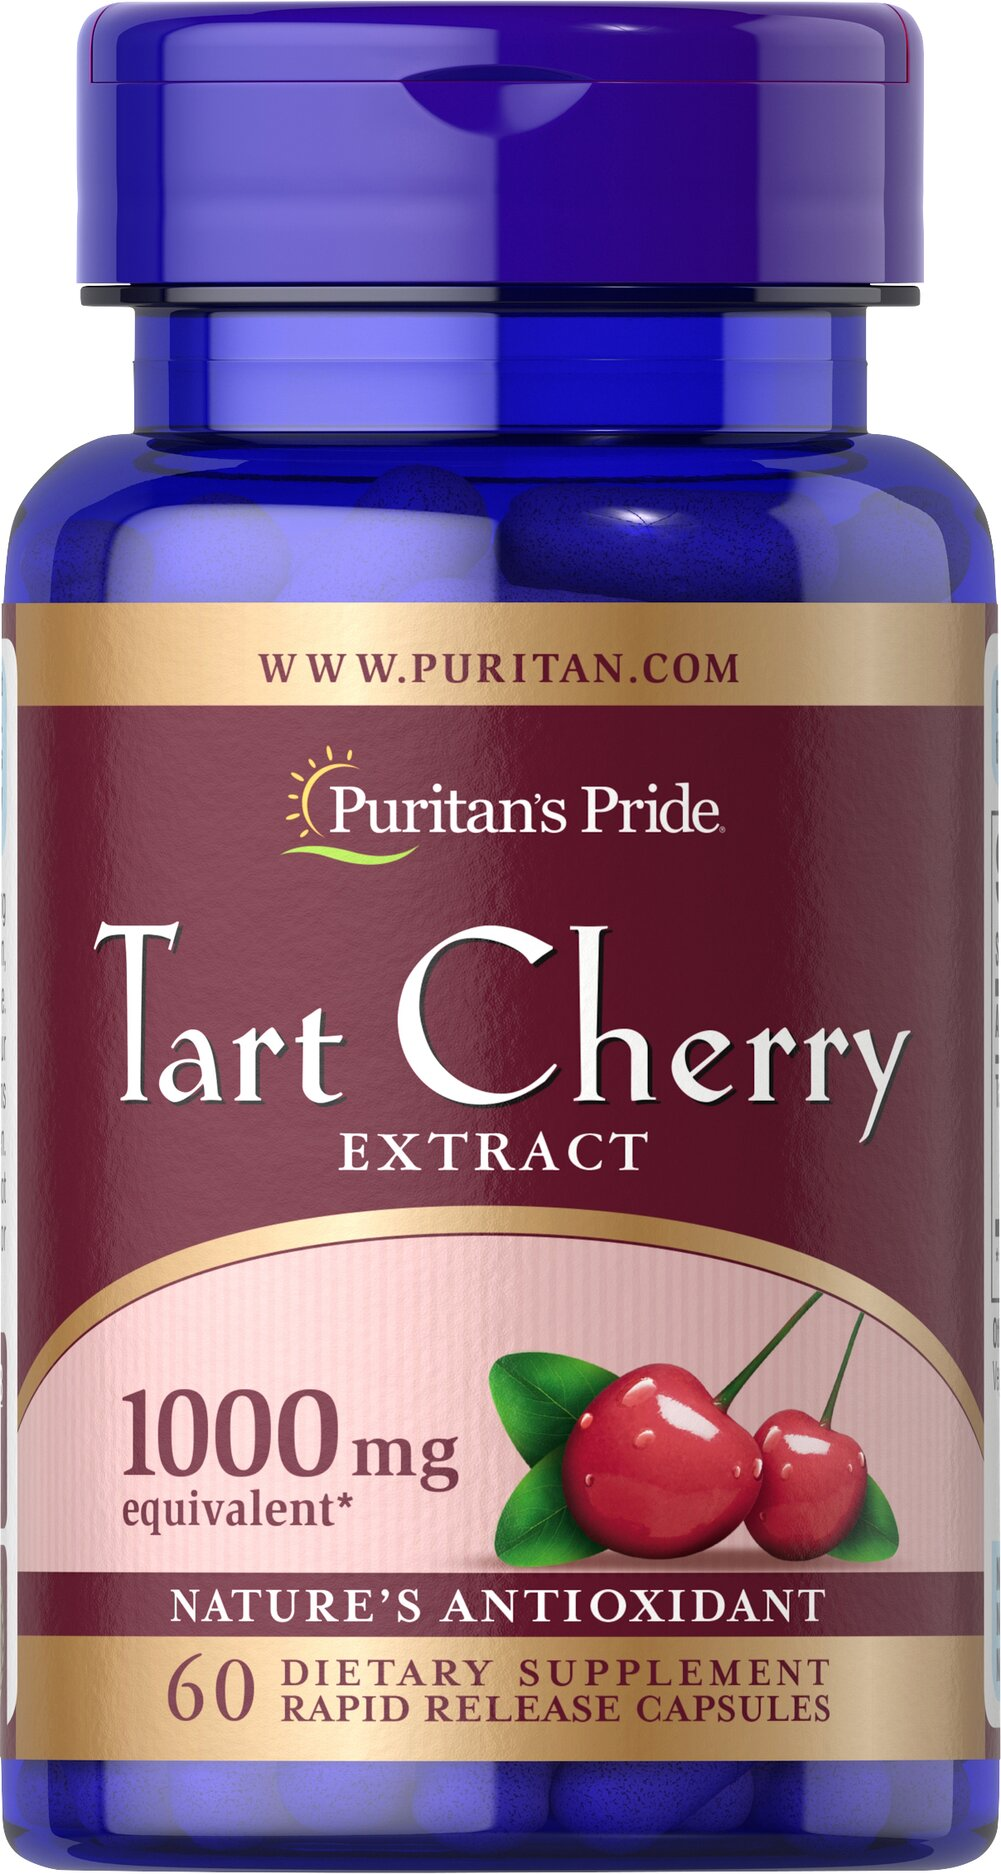 Tart Cherry Extract 1000 mg  60 Capsules 1000 mg $19.99